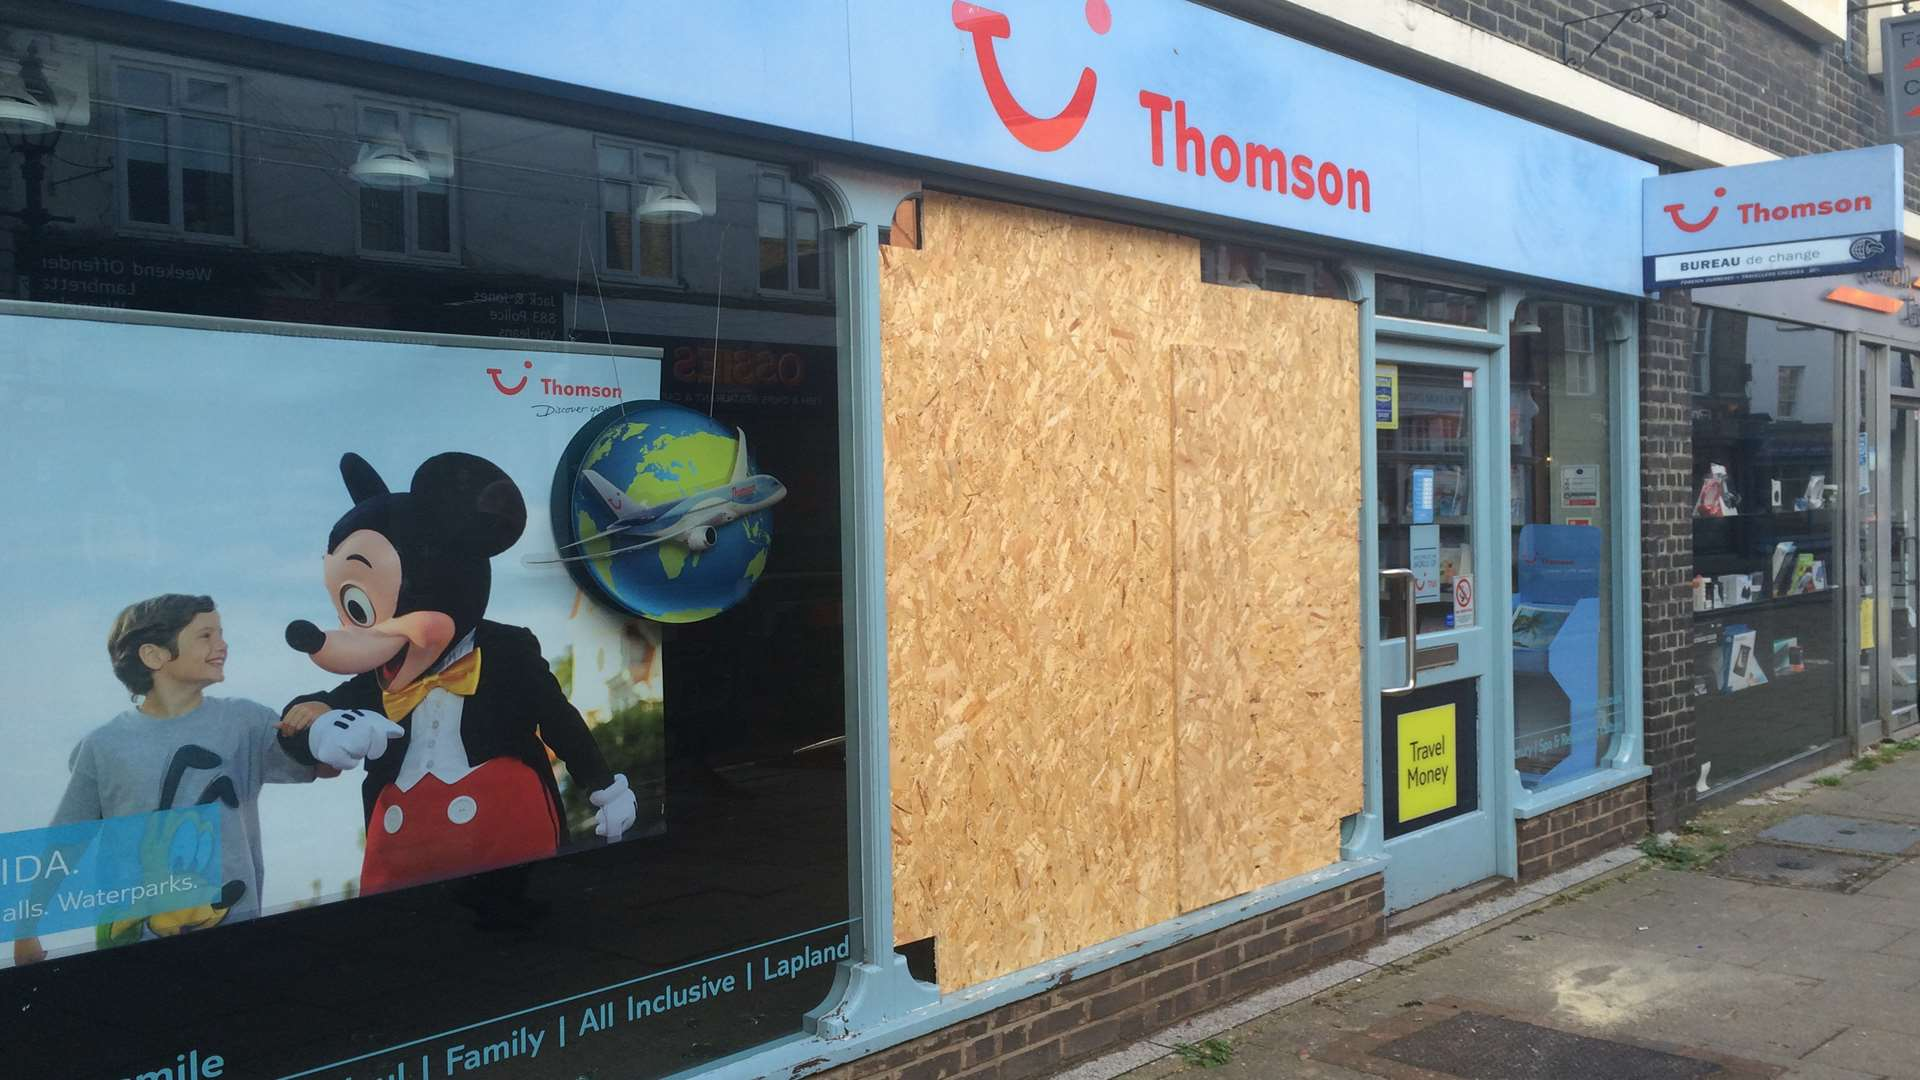 Thomson travel agents had its window damaged.